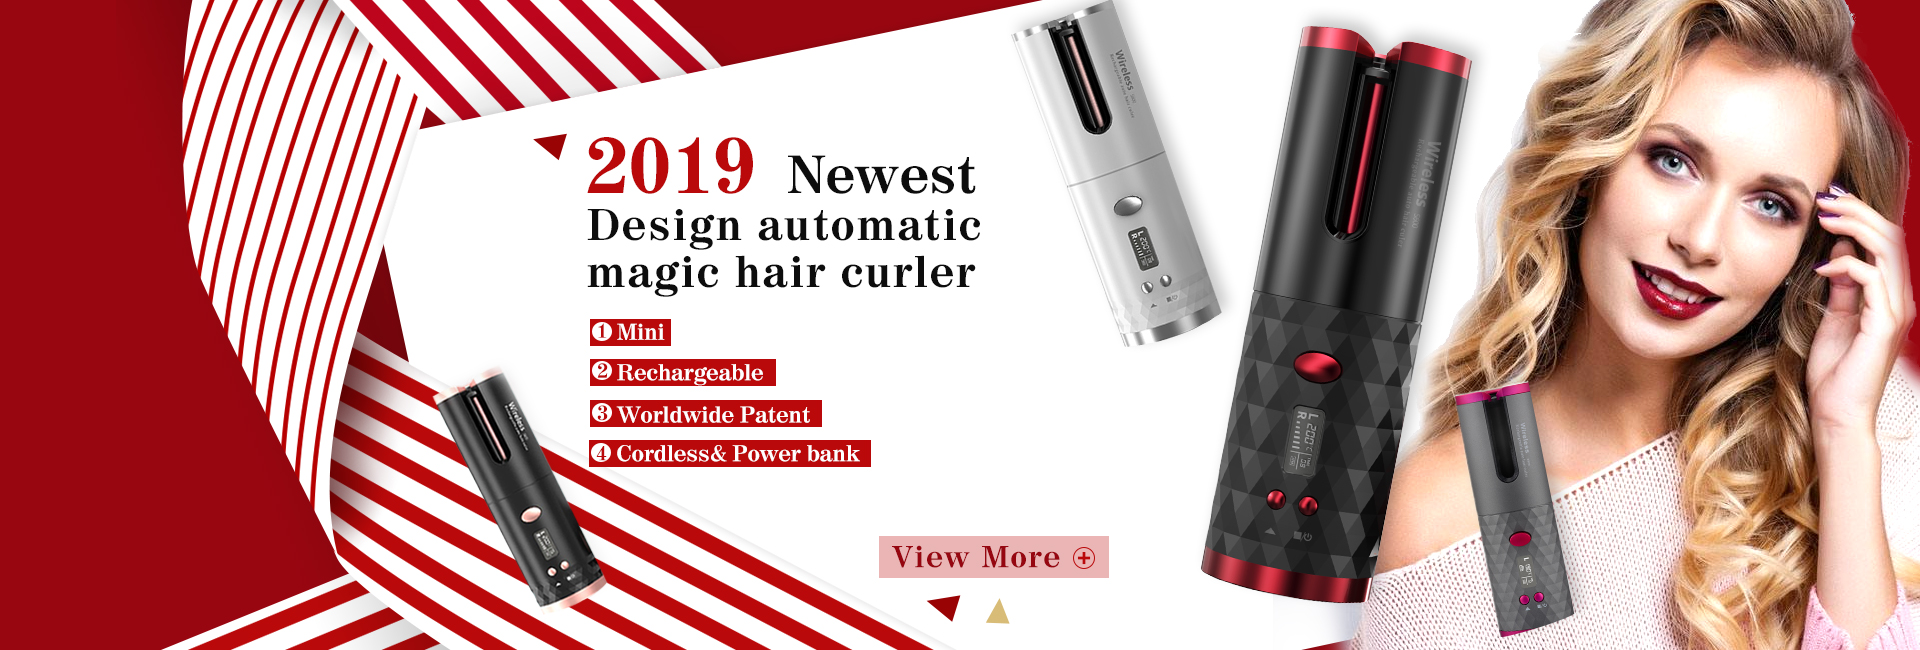 Rechargeable mini travel hair curler,wireless hair curler,the world's first cordless automatic magic hair curler